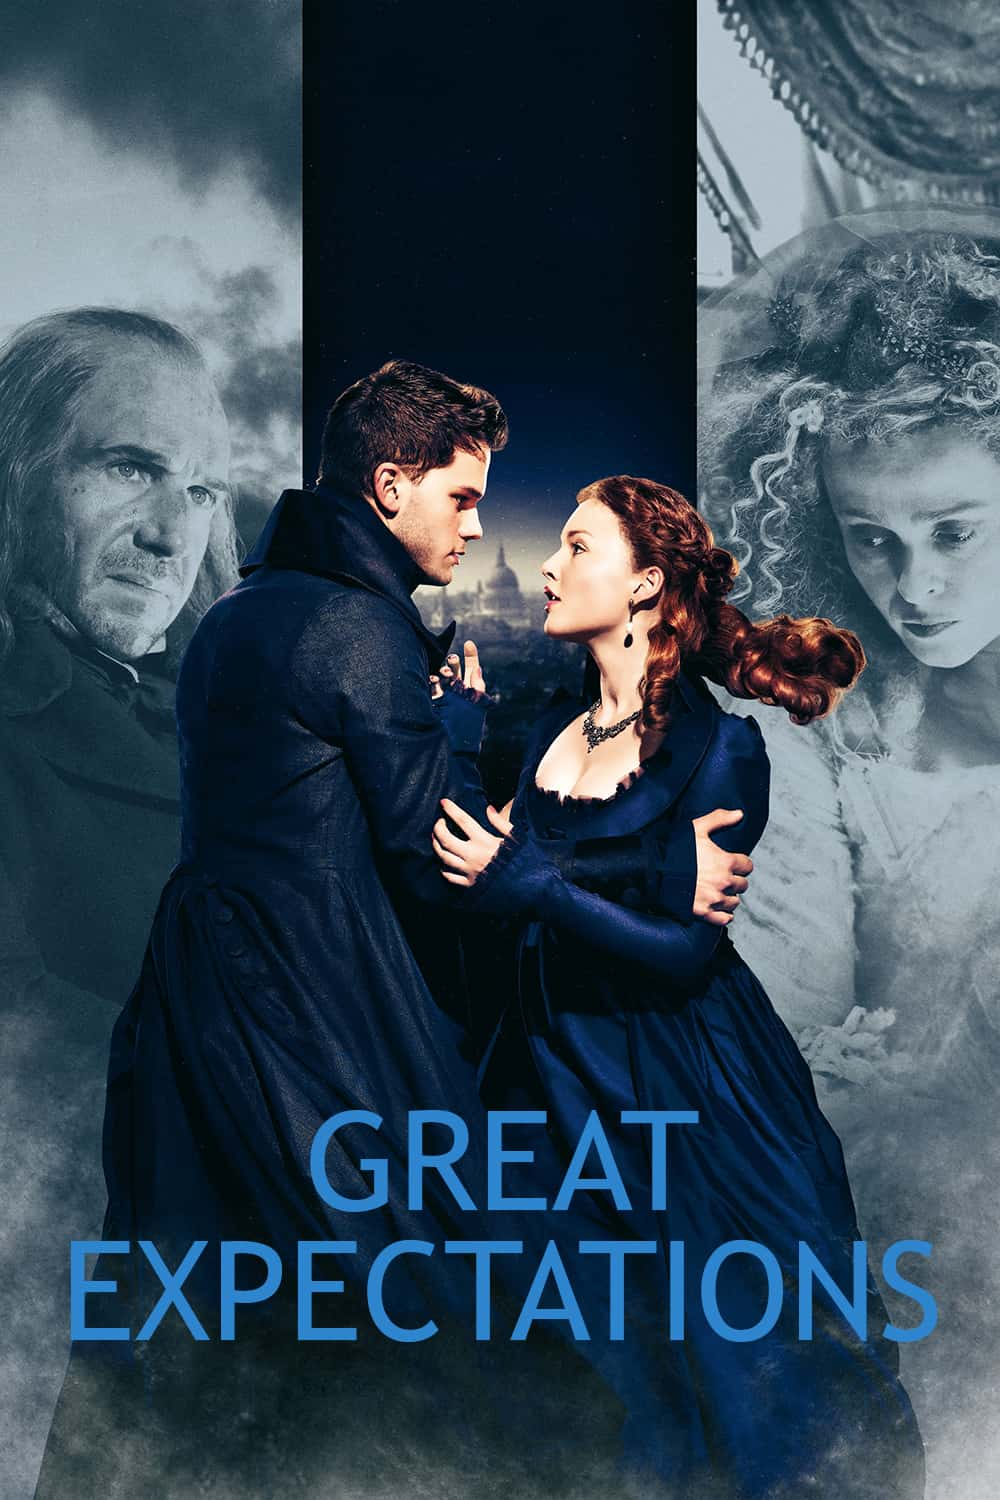 Great Expectations, 2012